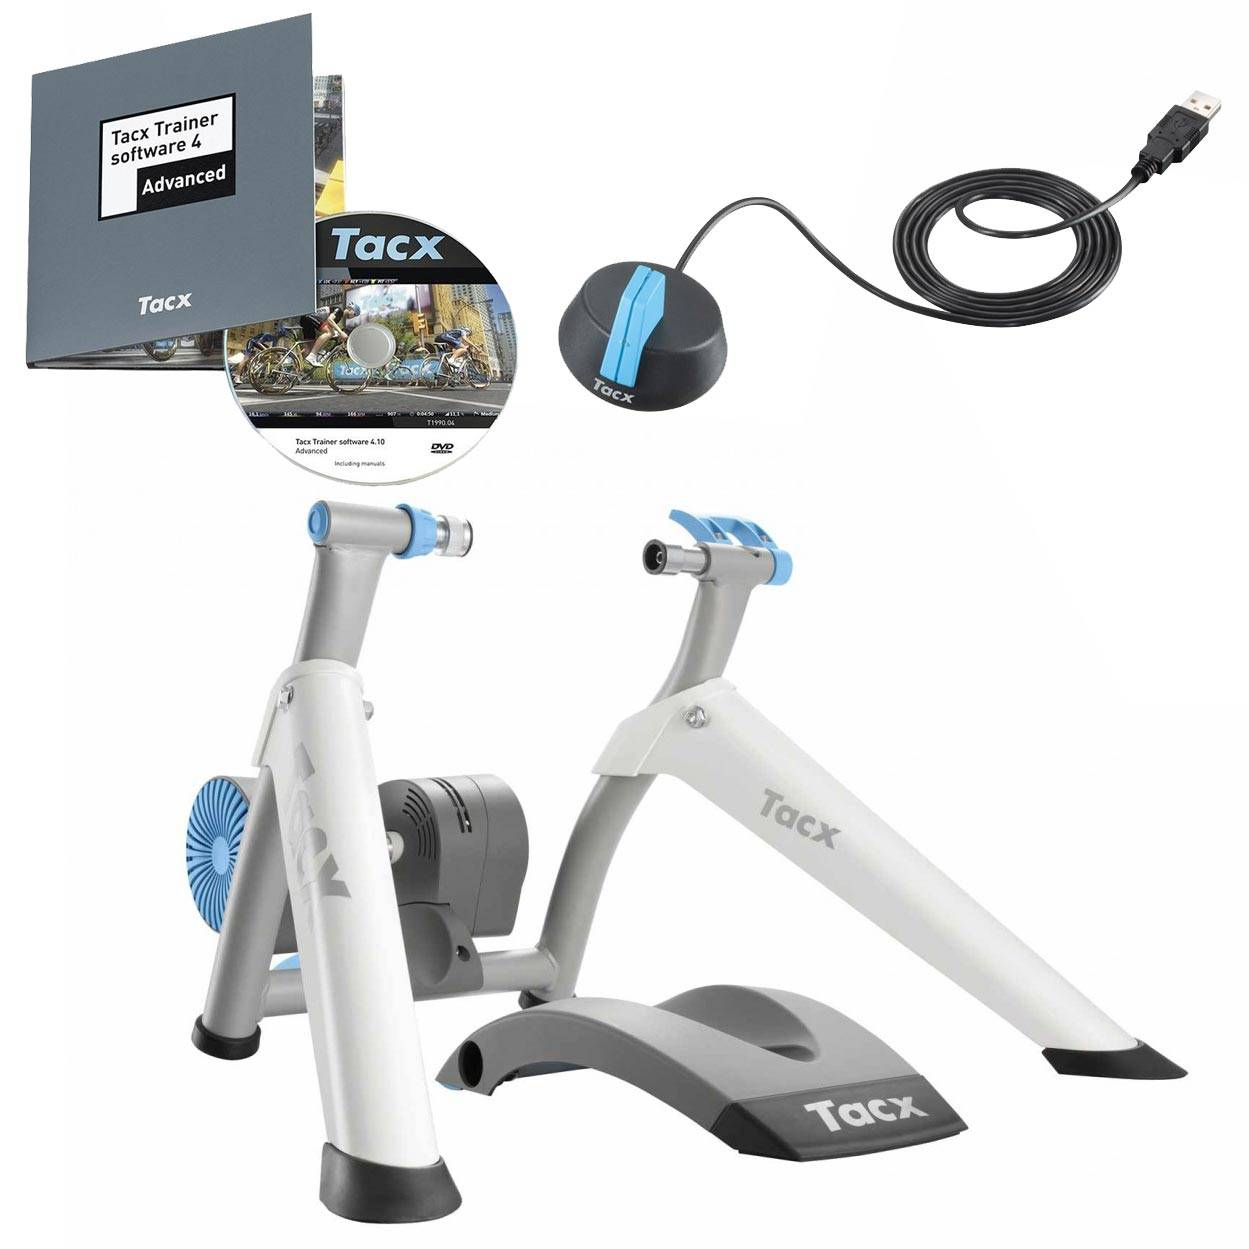 Tacx Trainer Software 4 Advanced Crack